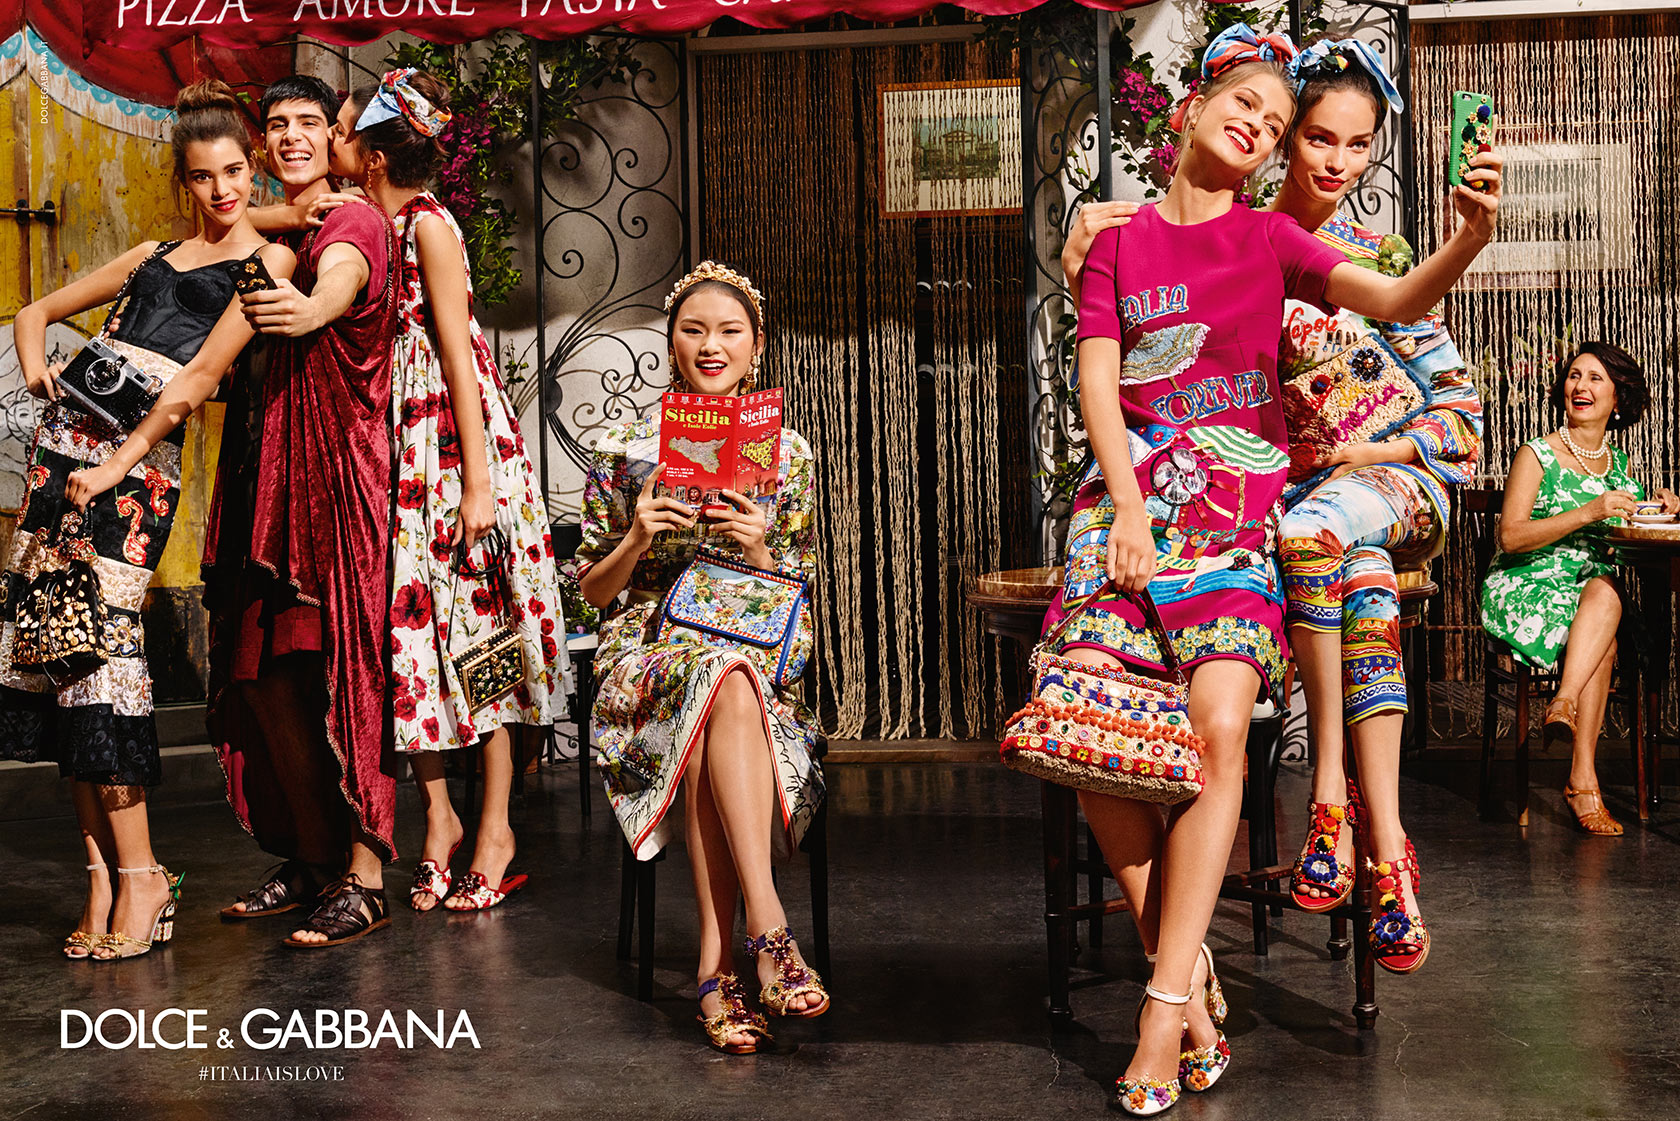 Dolce and Gabbana Summer 2016 women advertising campaign